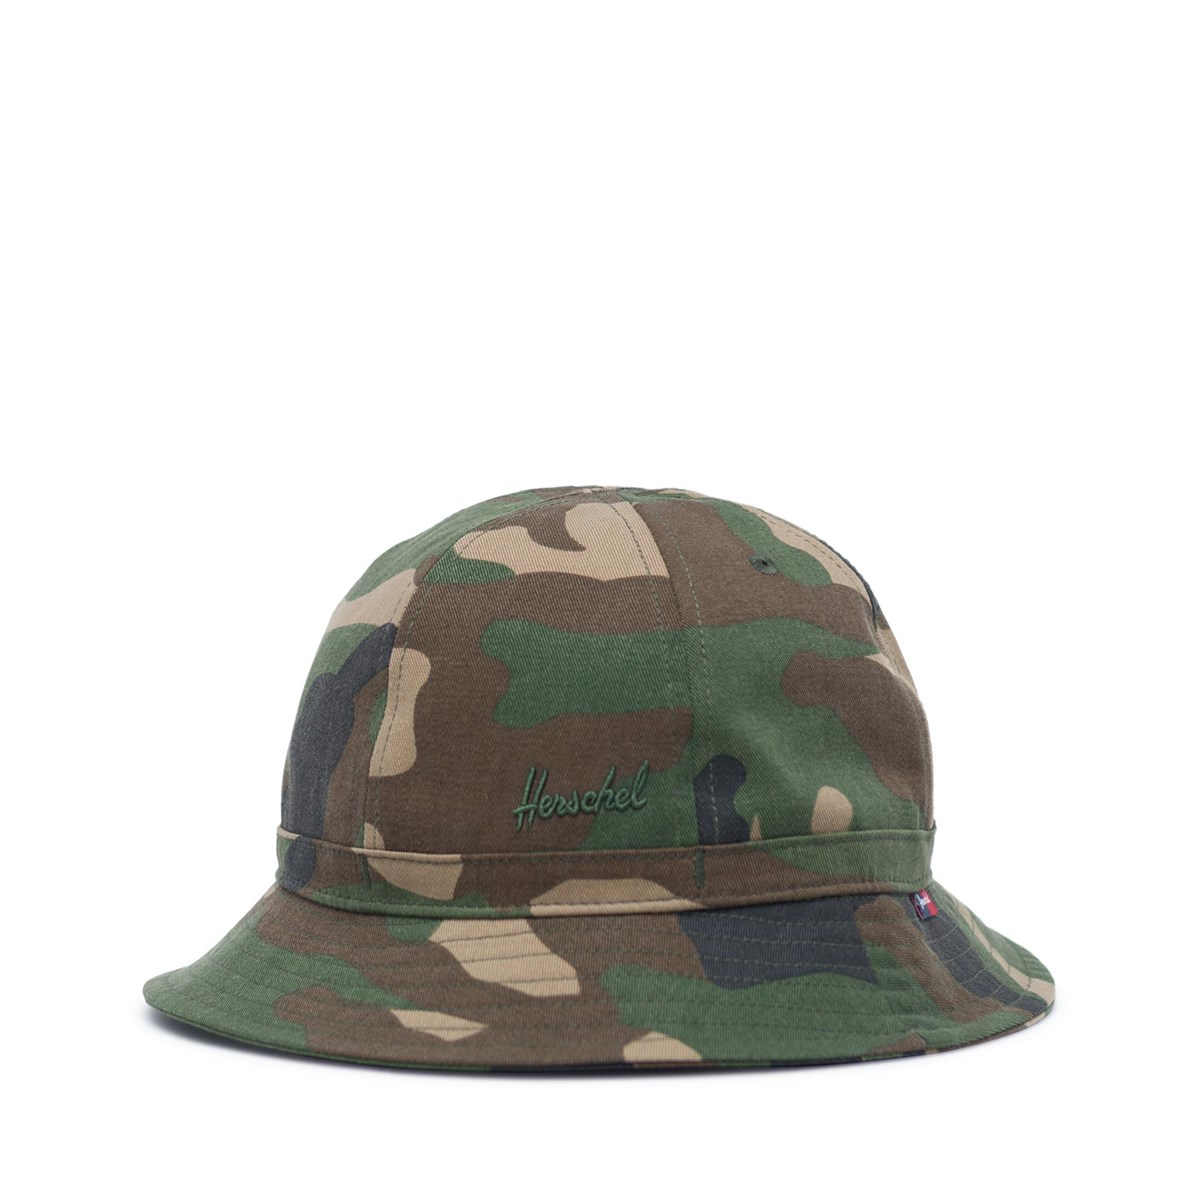 Cooperman Bucket Hat in Camo